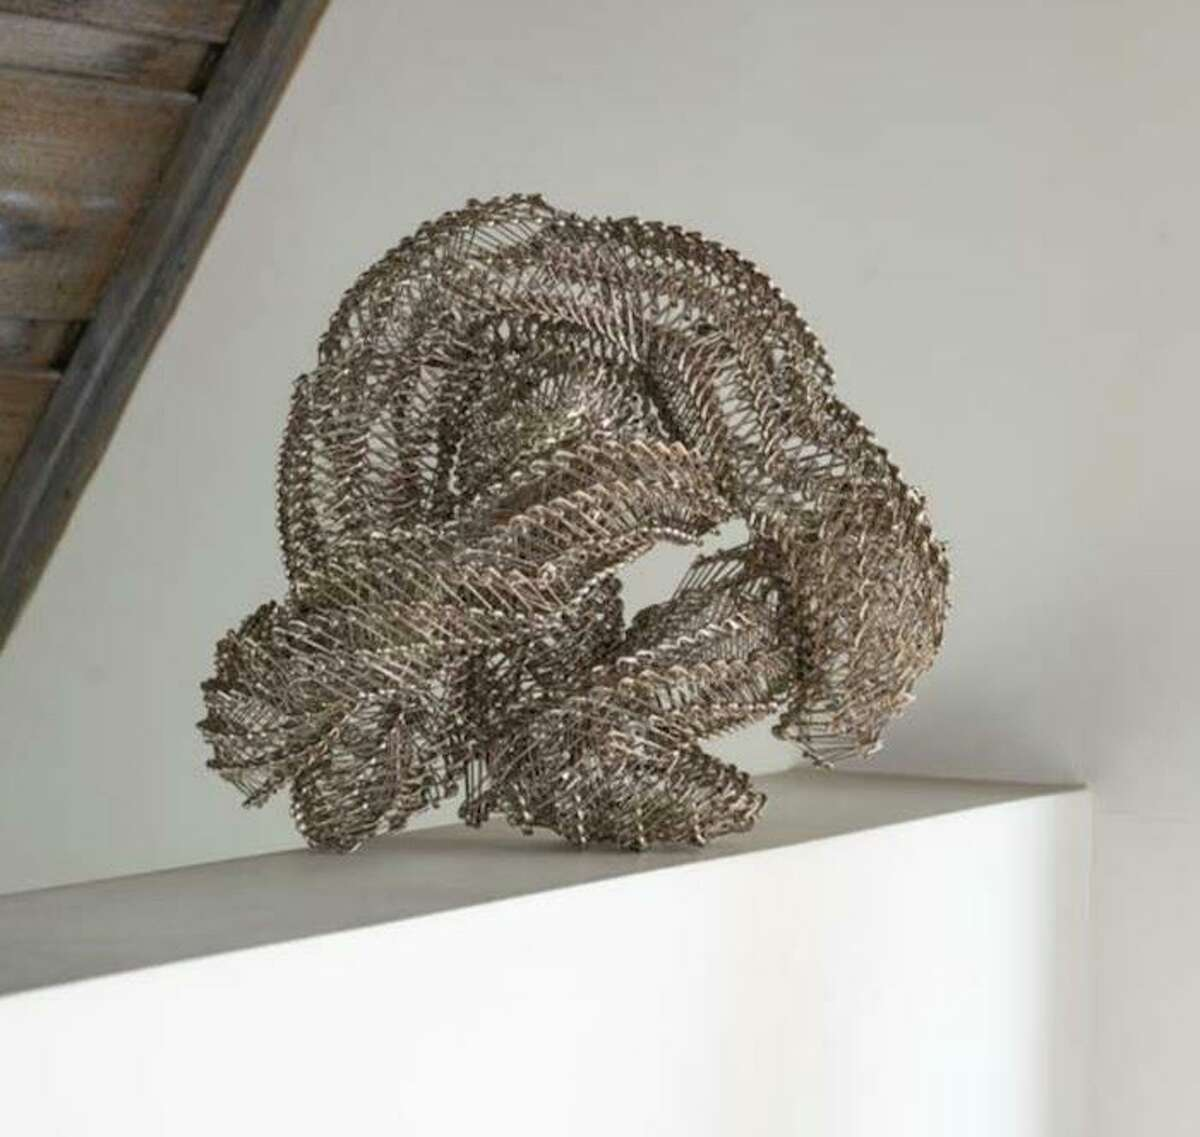 Unknown Creature by Tamiko Kawata is featured in browngrotta arts' new fiber exhibition,